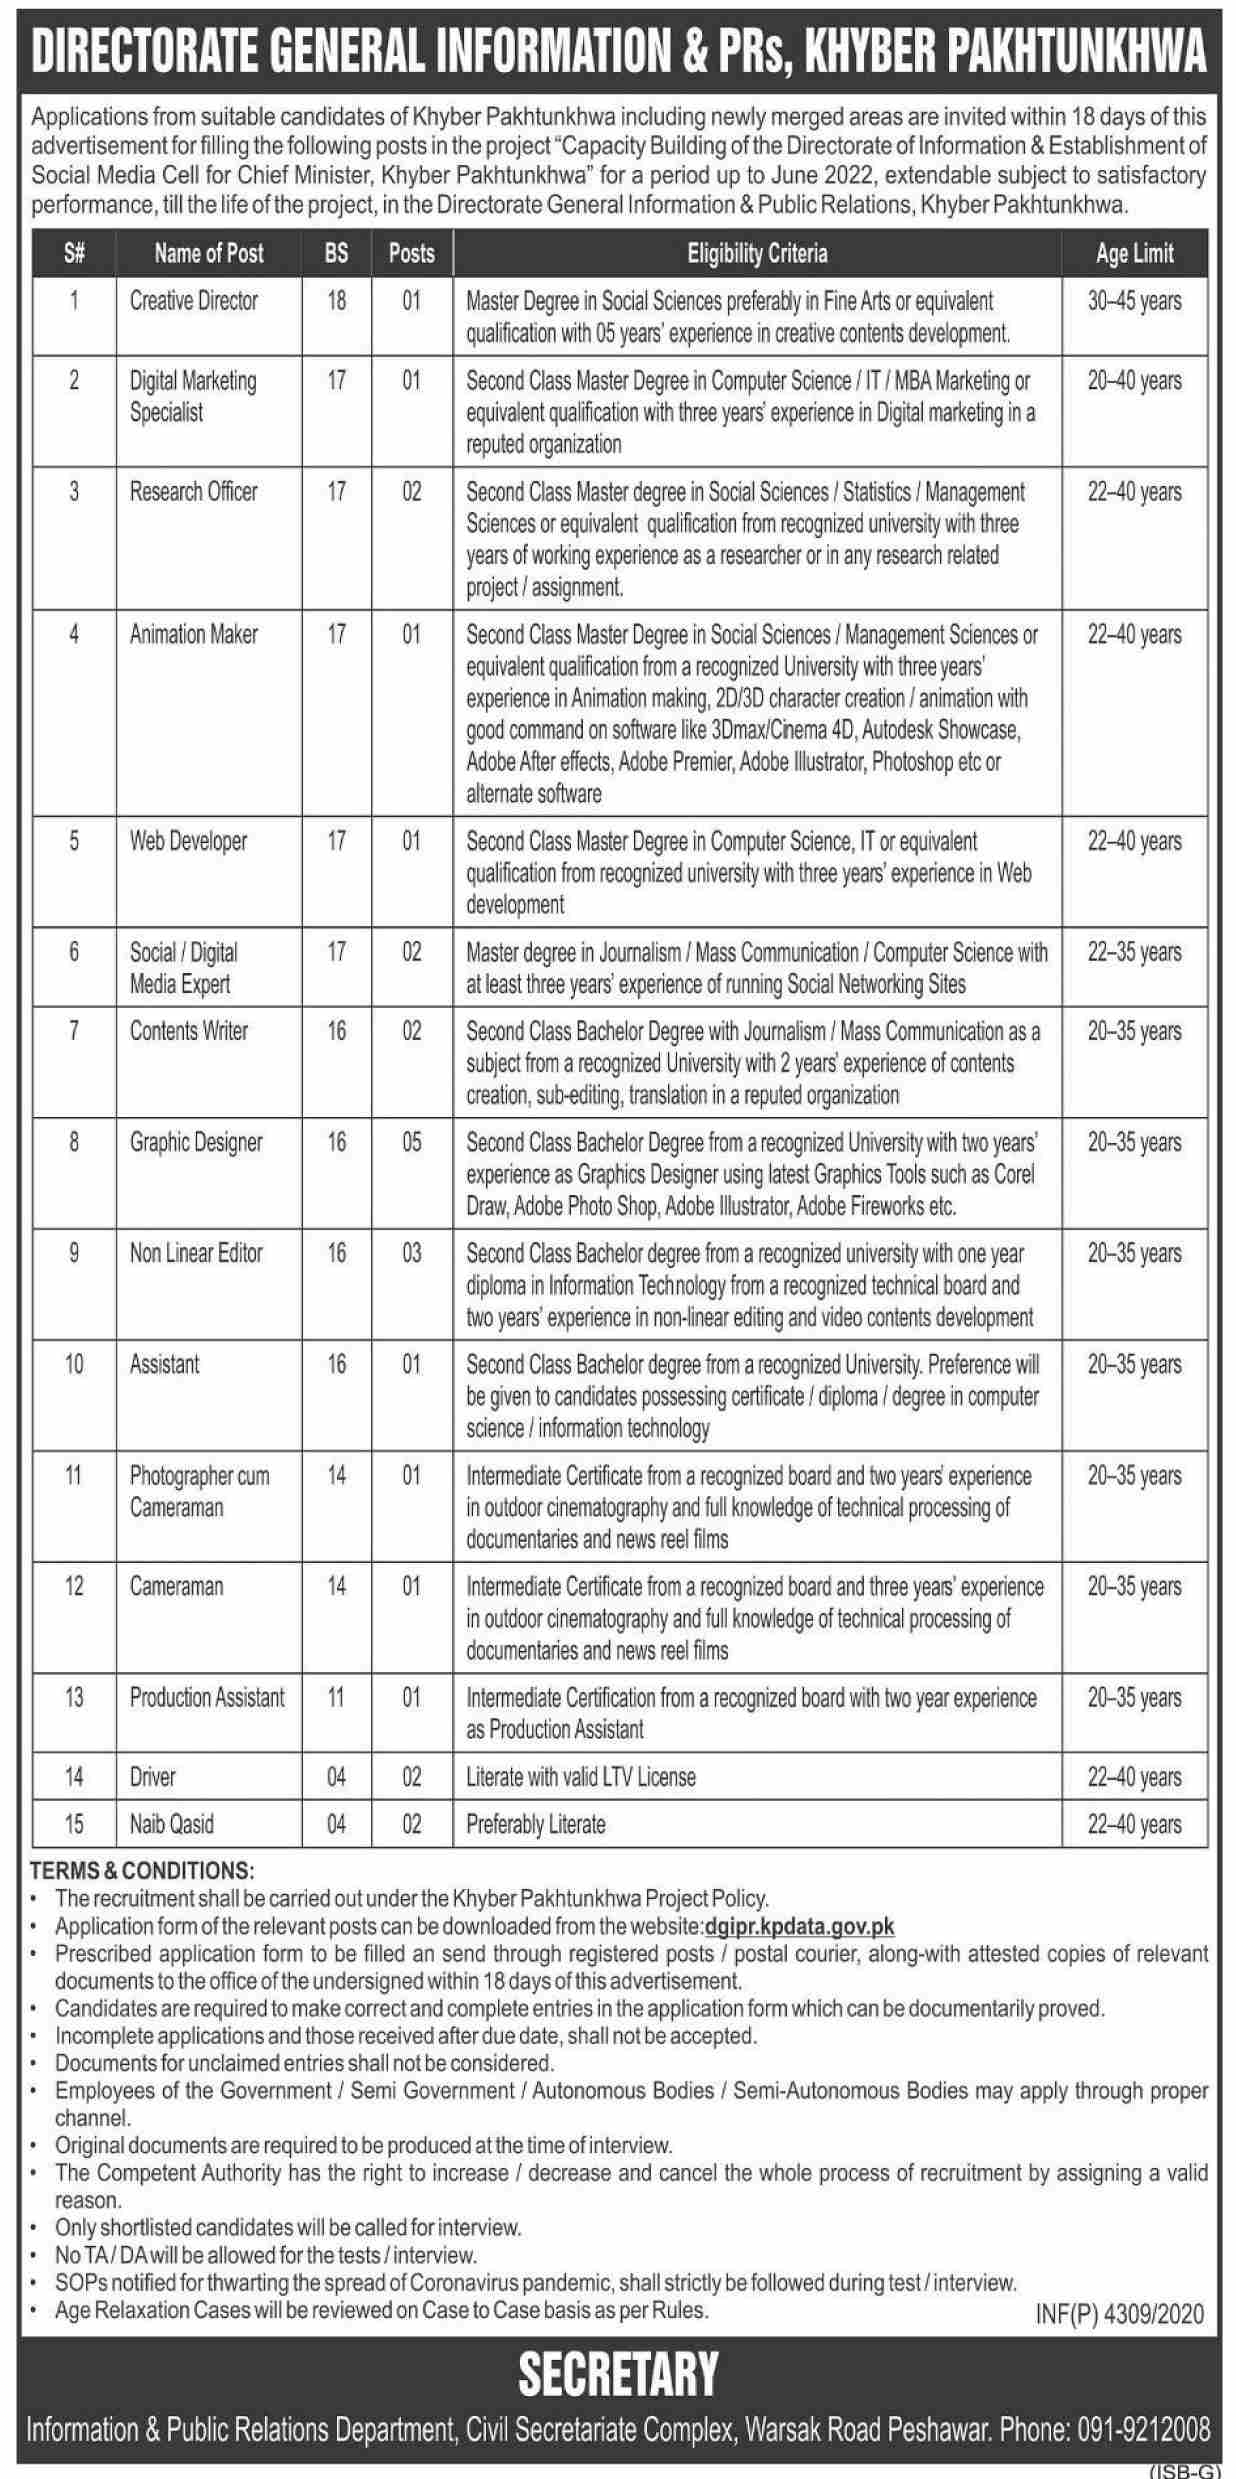 Directorate General Information & PRs Khyber Pakhtunkhwa Jobs November 2020